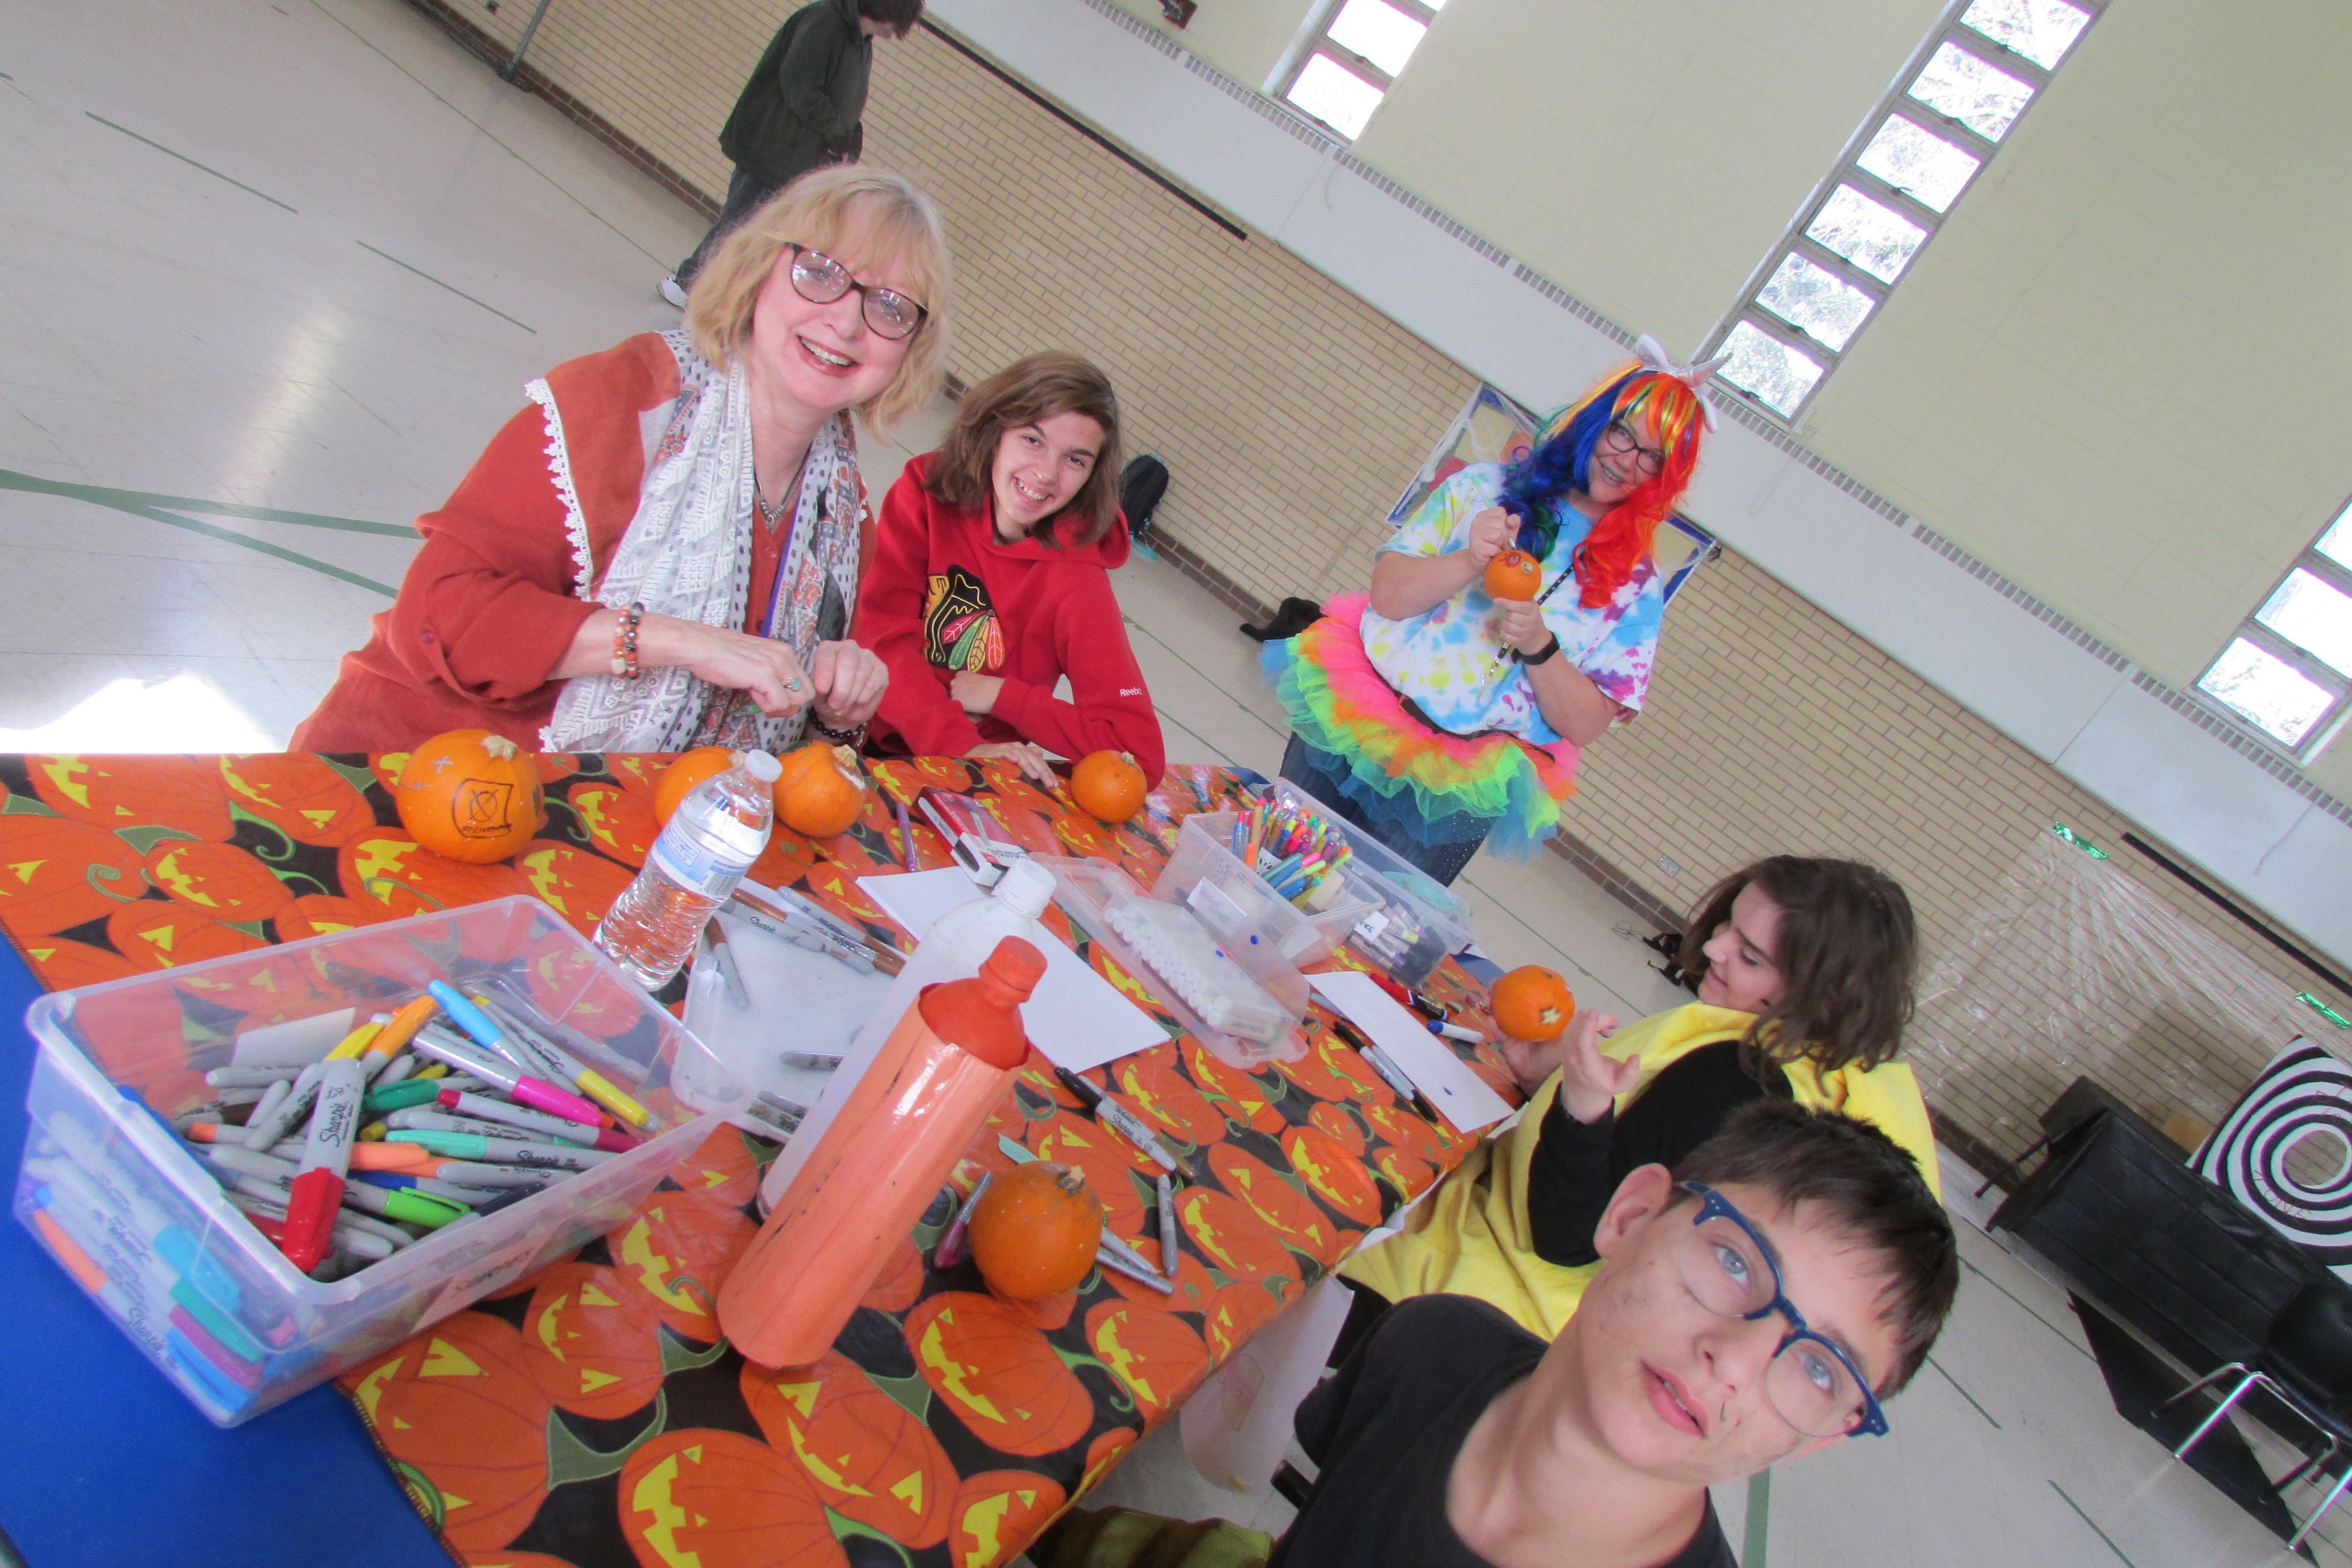 Decorating Pumpkins With Ms. Ramsayer